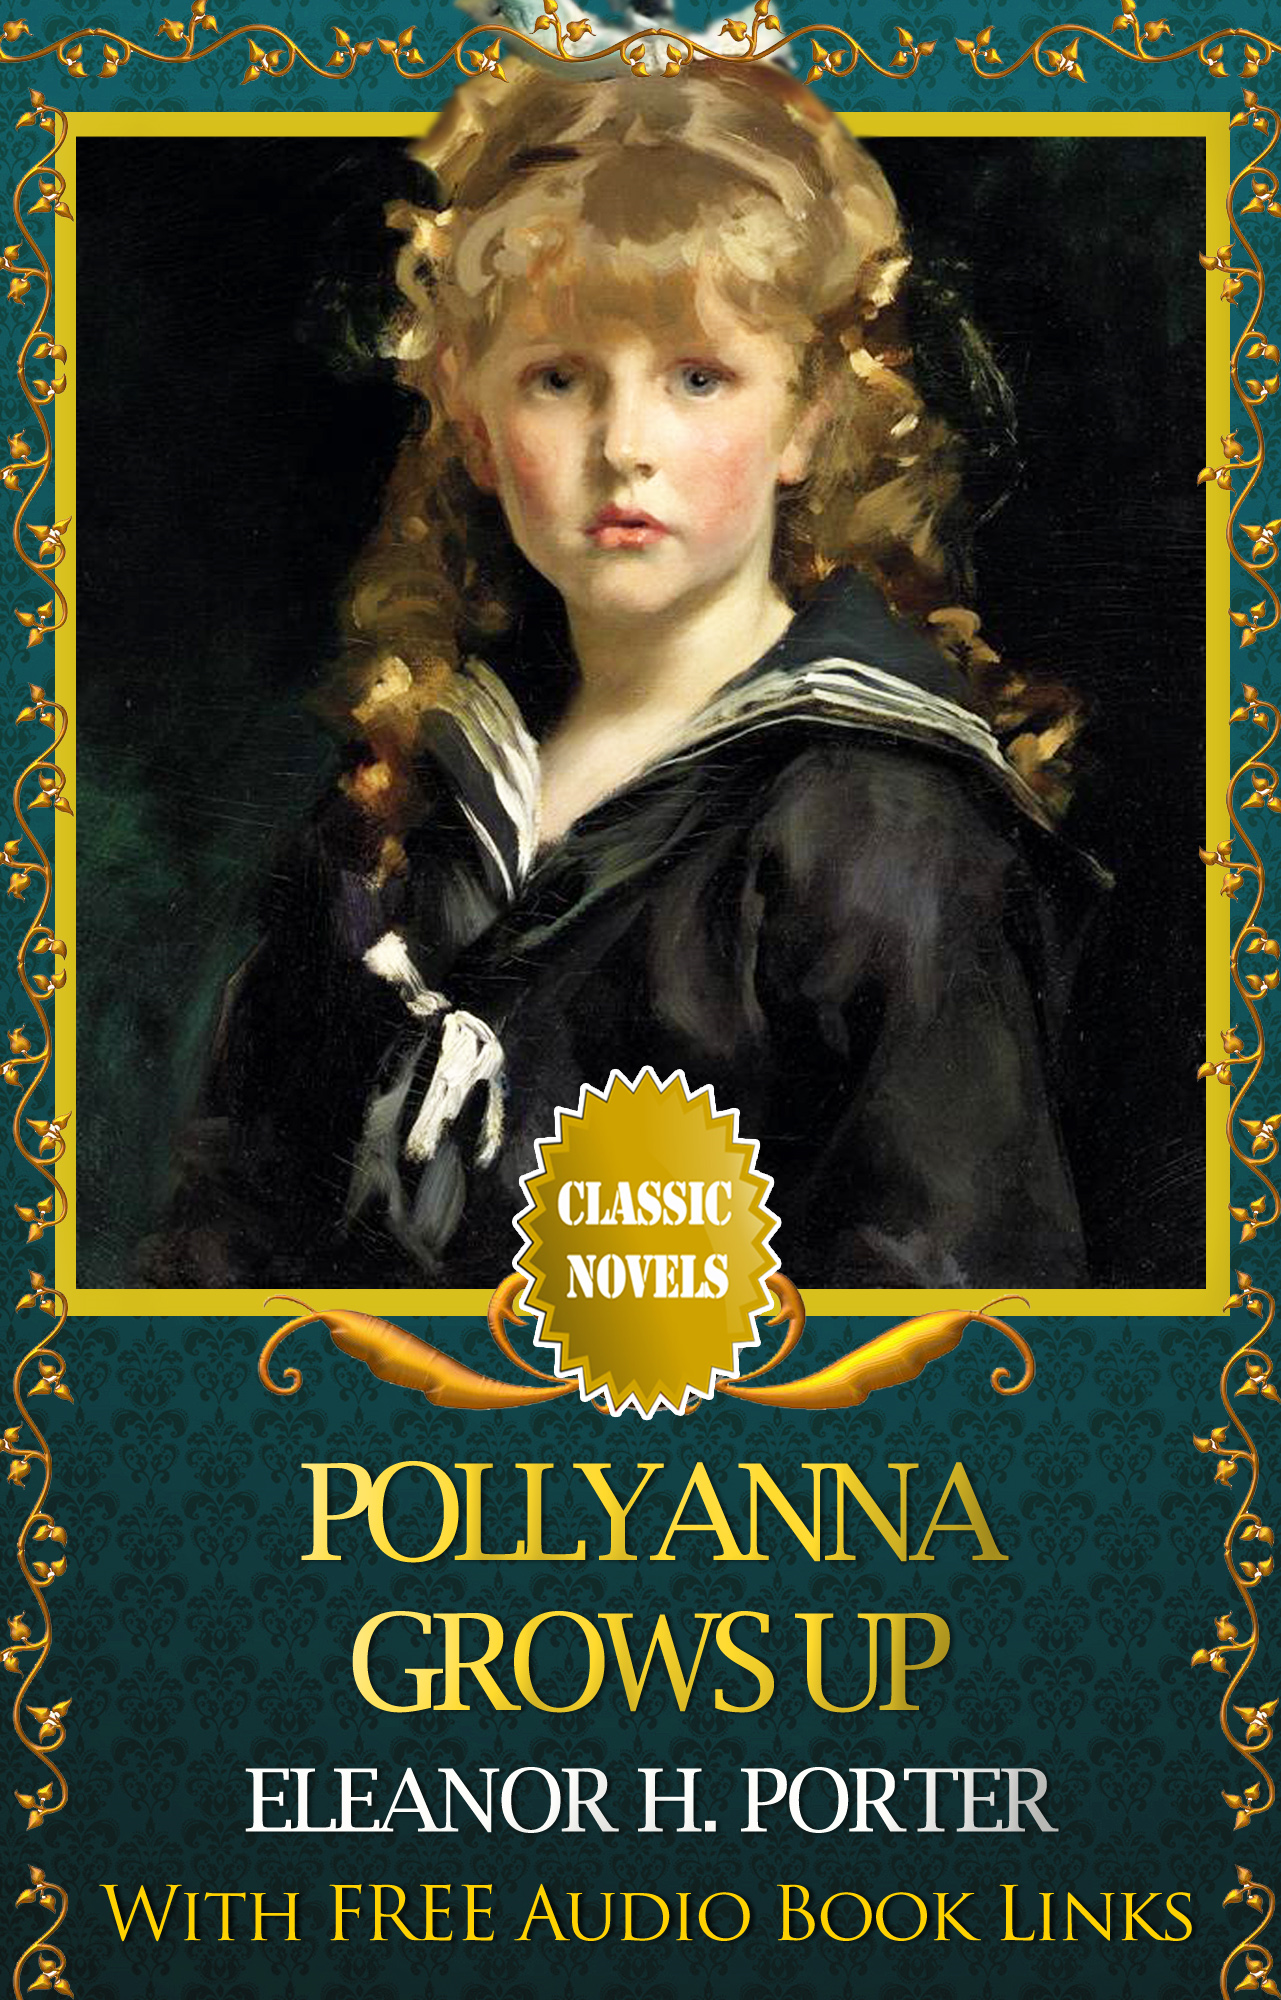 POLLYANNA GROWS UP Classic Novels: New Illustrated [Free Audiobook Links]